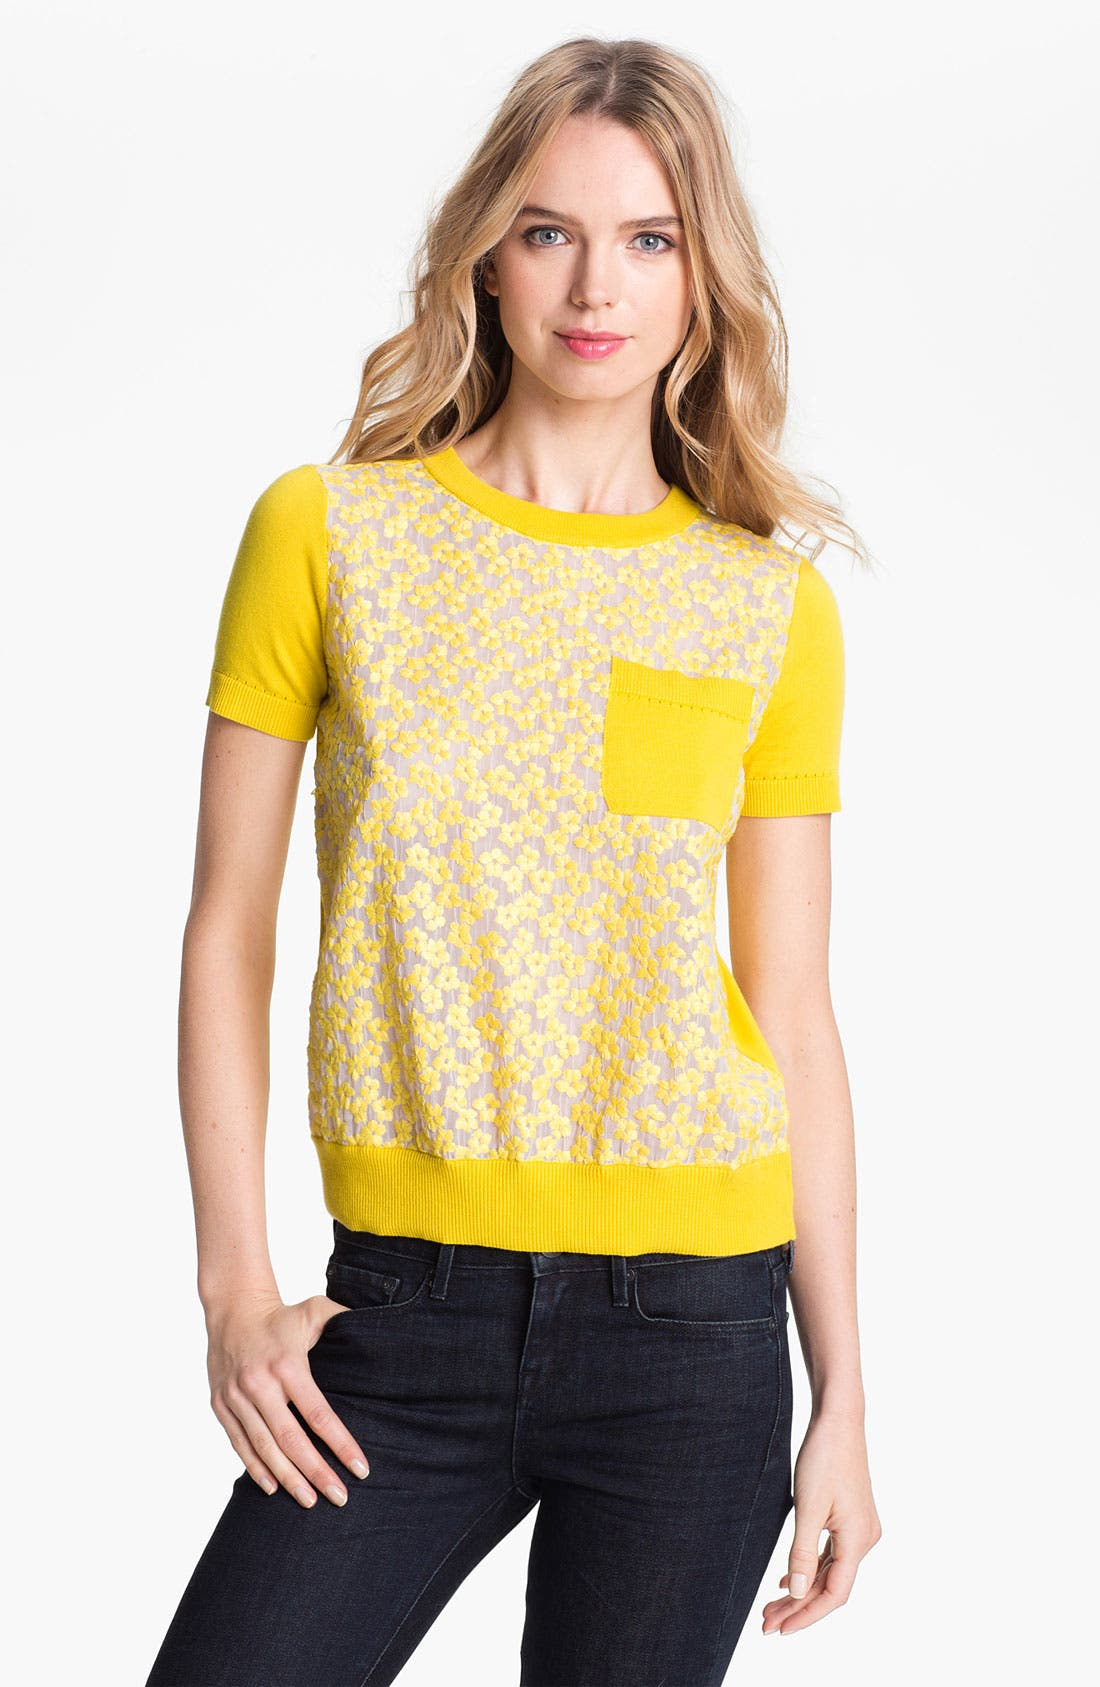 Main Image - kate spade new york 'mercy' cotton sweater